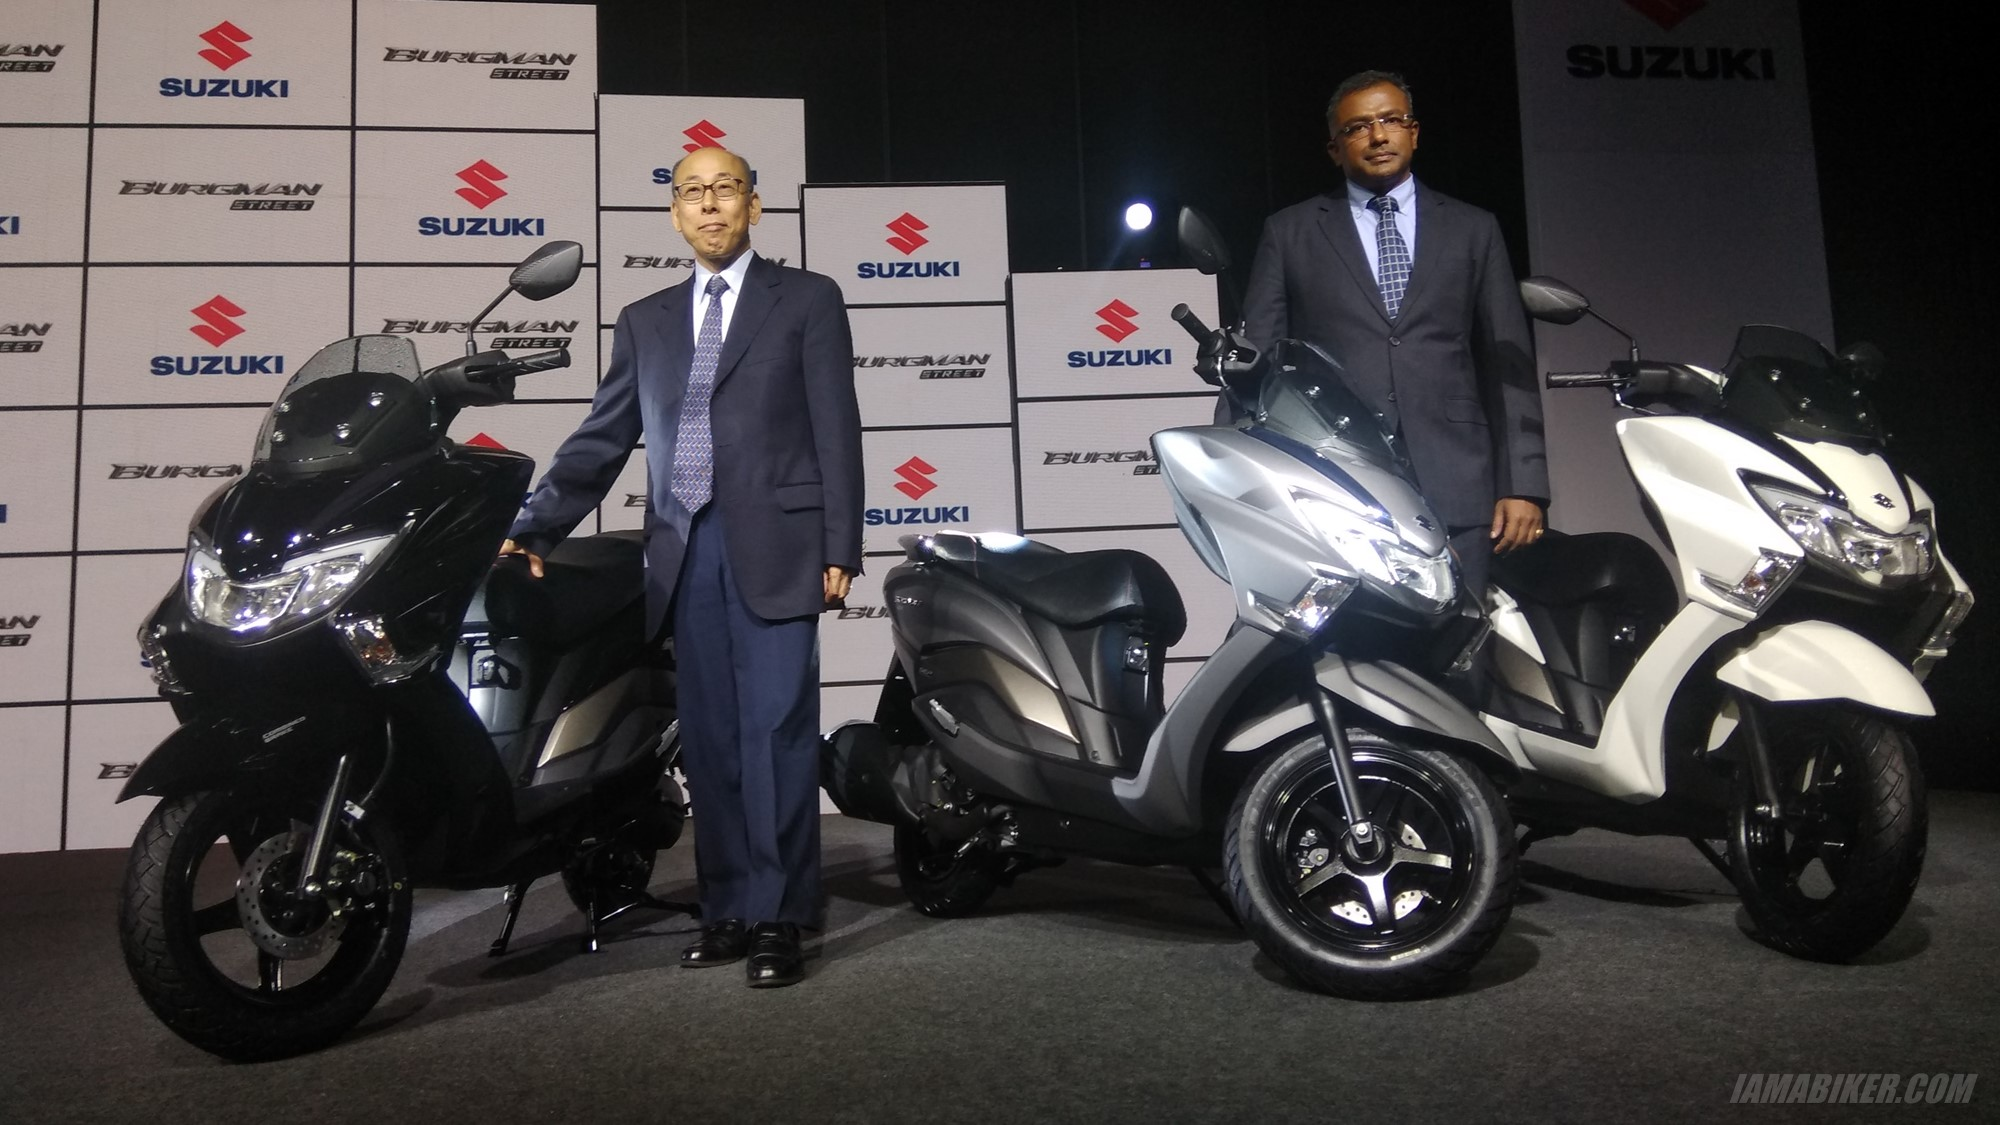 Suzuki Burgman Street launched at a price of Rs 68000